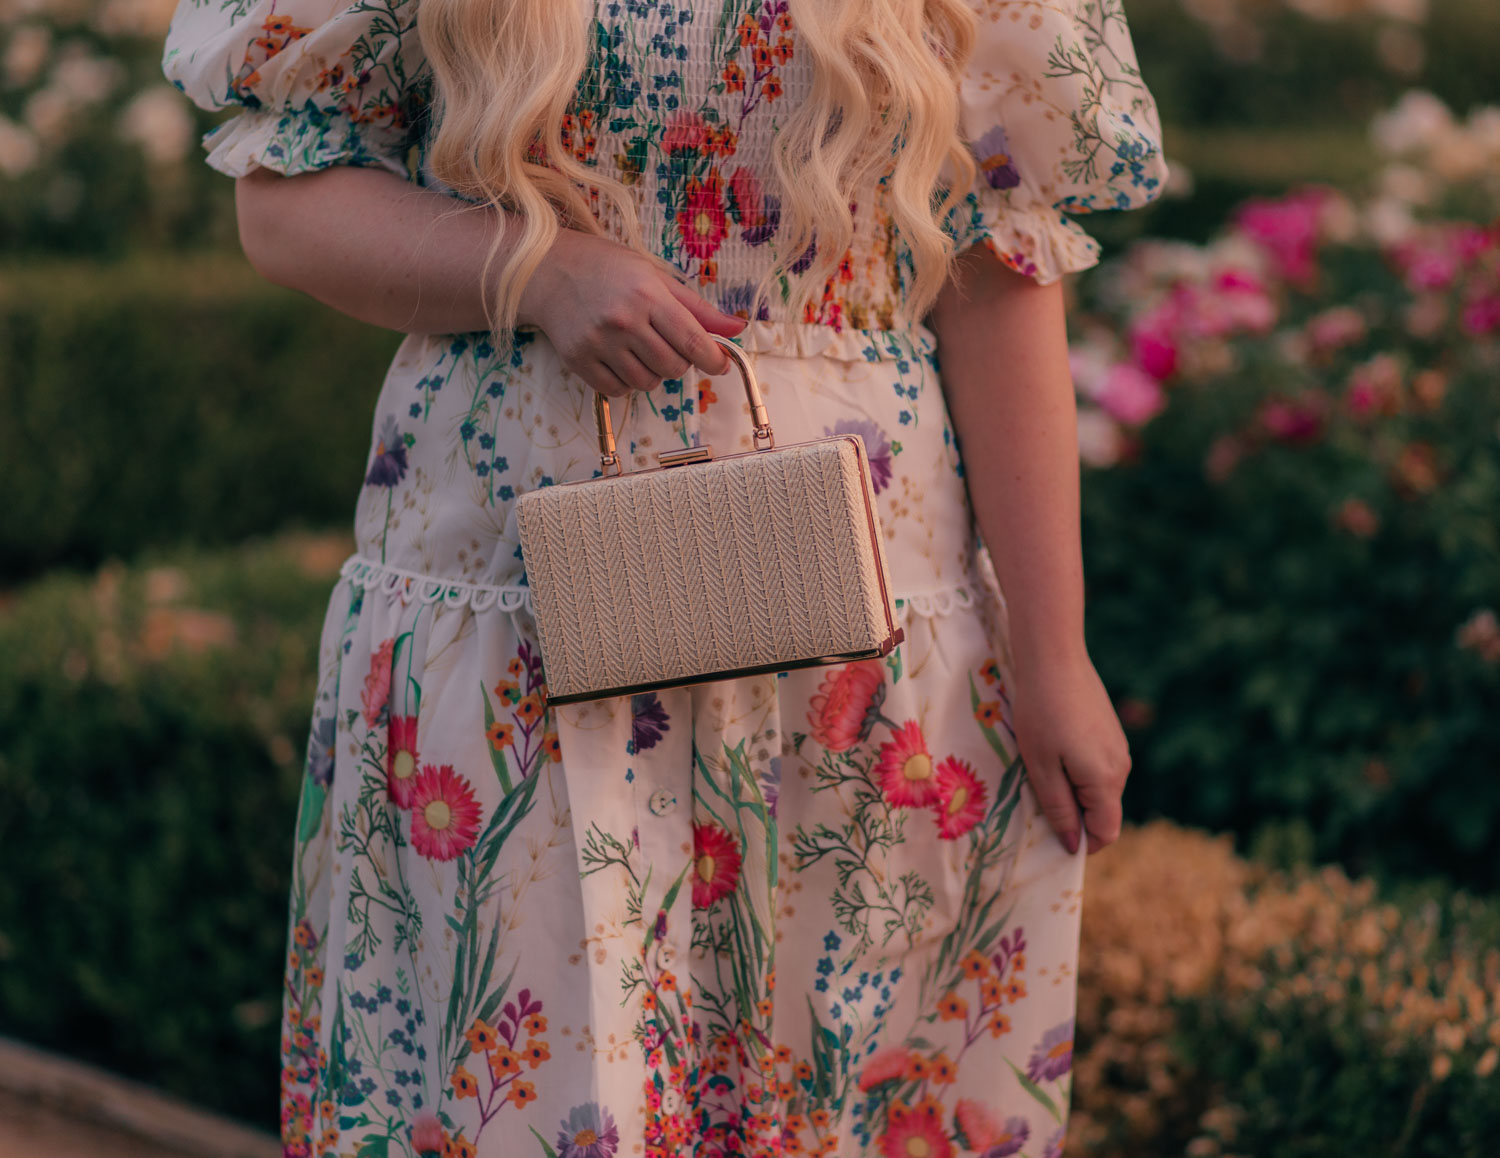 Feminine Fashion Blogger Elizabeth Hugen of Lizzie in Lace styles a floral top and skirt set from Chicwish for summer along with a vintage inspired handbag